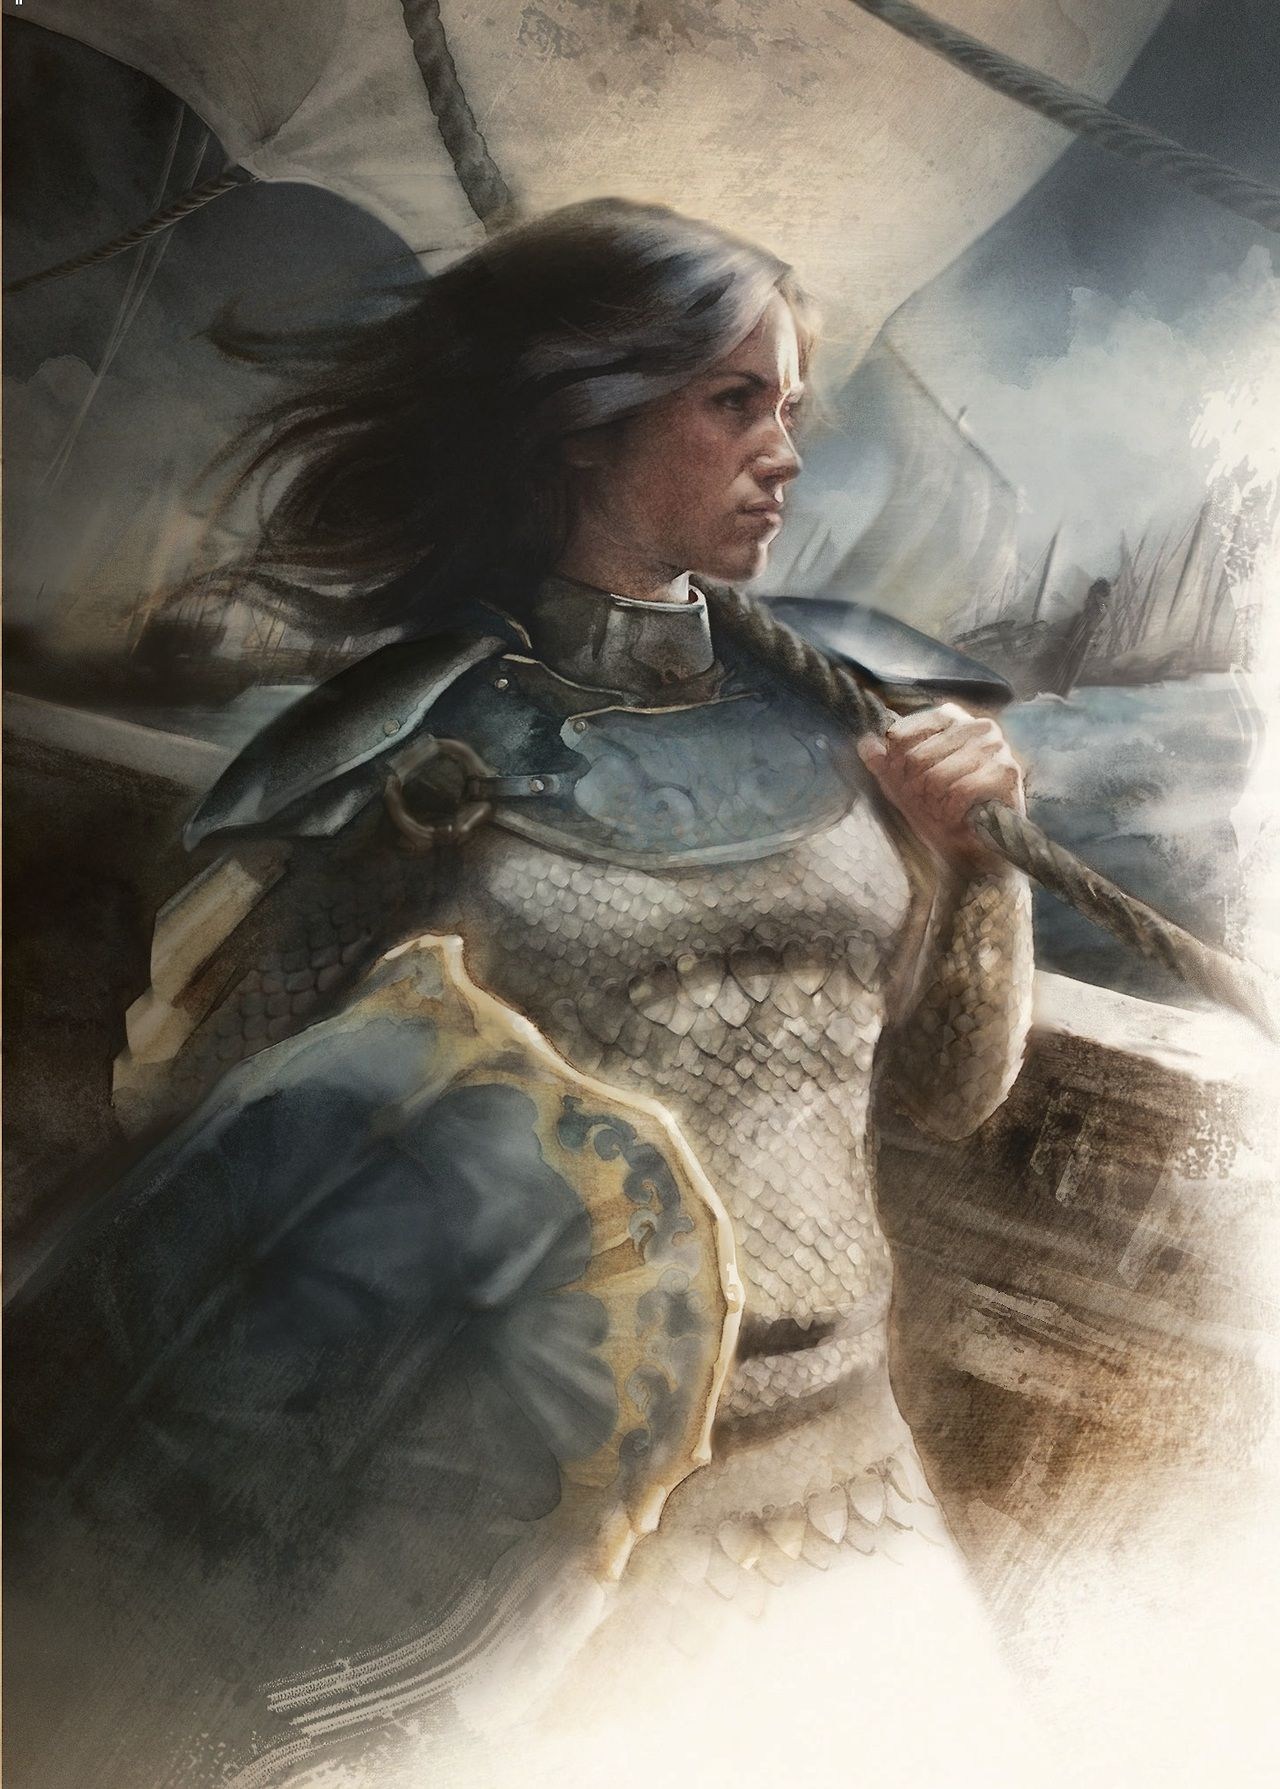 Princess Nymeria: A Magnificent ASOIAF Character Illustration by J.K. Drummond